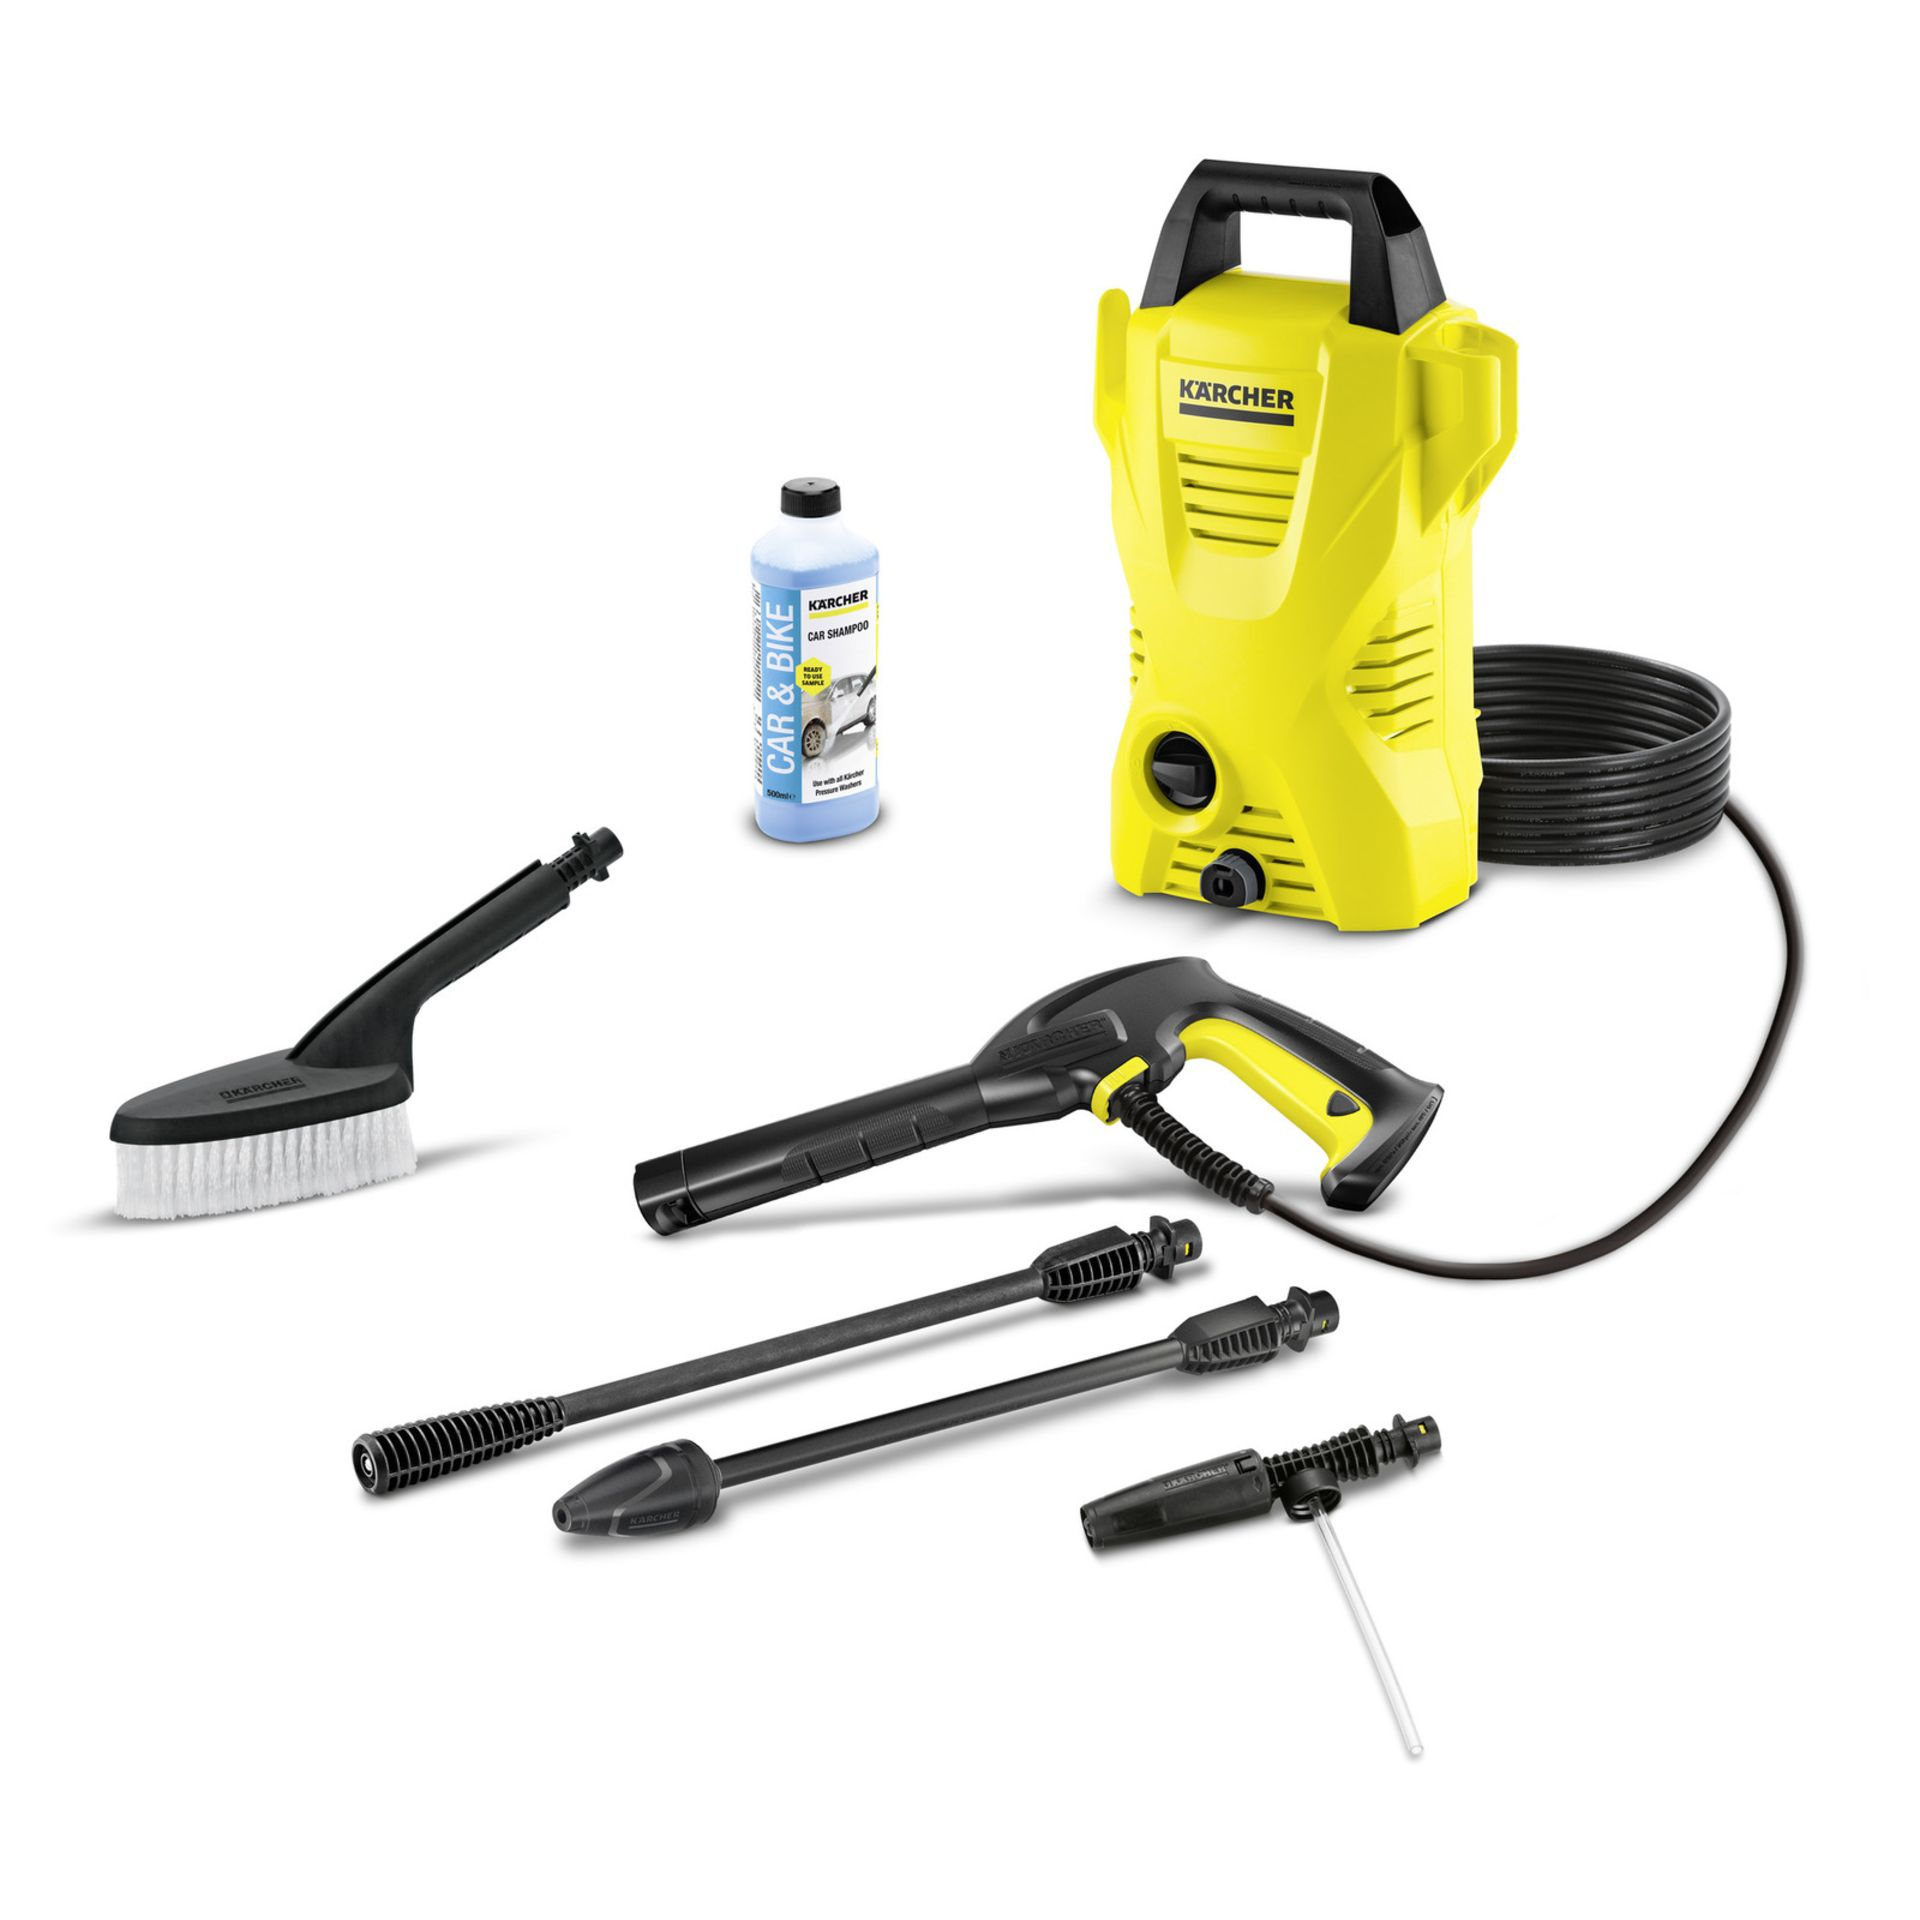 Lot 18032 - V Brand New Karcher K2 Compact Car High Pressure Cleaner With Wash Brush - Foam Nozzle & Car Shampoo